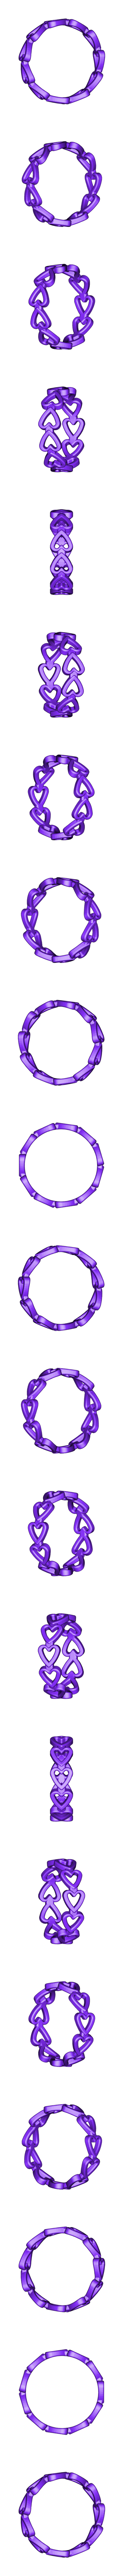 New-Valentine-Ring-repaired-repaired.stl Download free STL file Valentines Set • 3D printer model, Easton3D